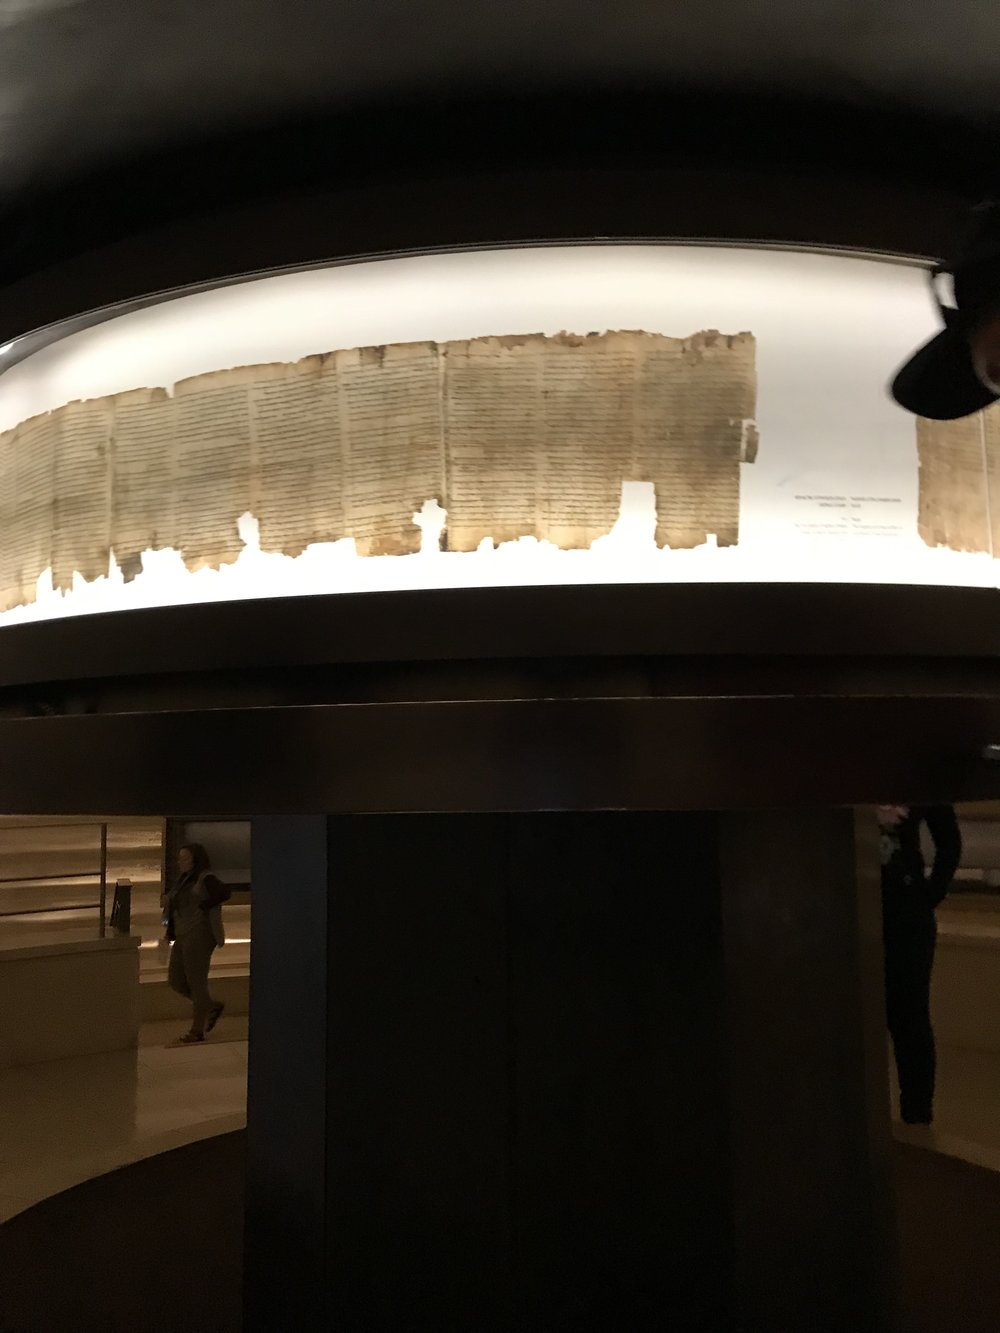 However, it was very special to see actual shards of the Dead Sea Scrolls